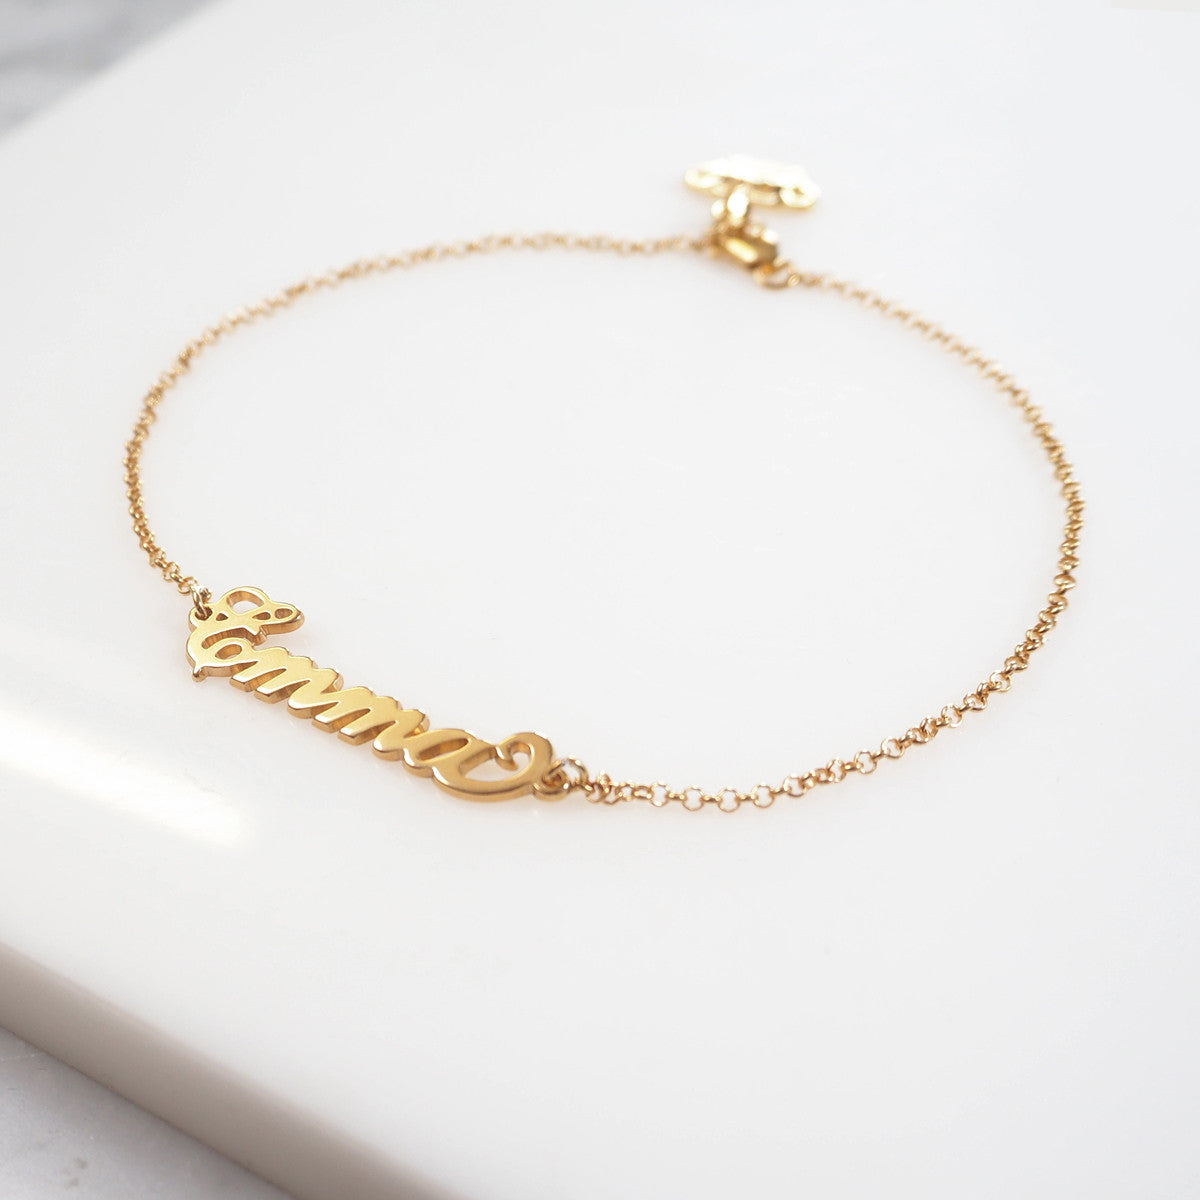 products zccollection fullsizerender bracelet anklet name